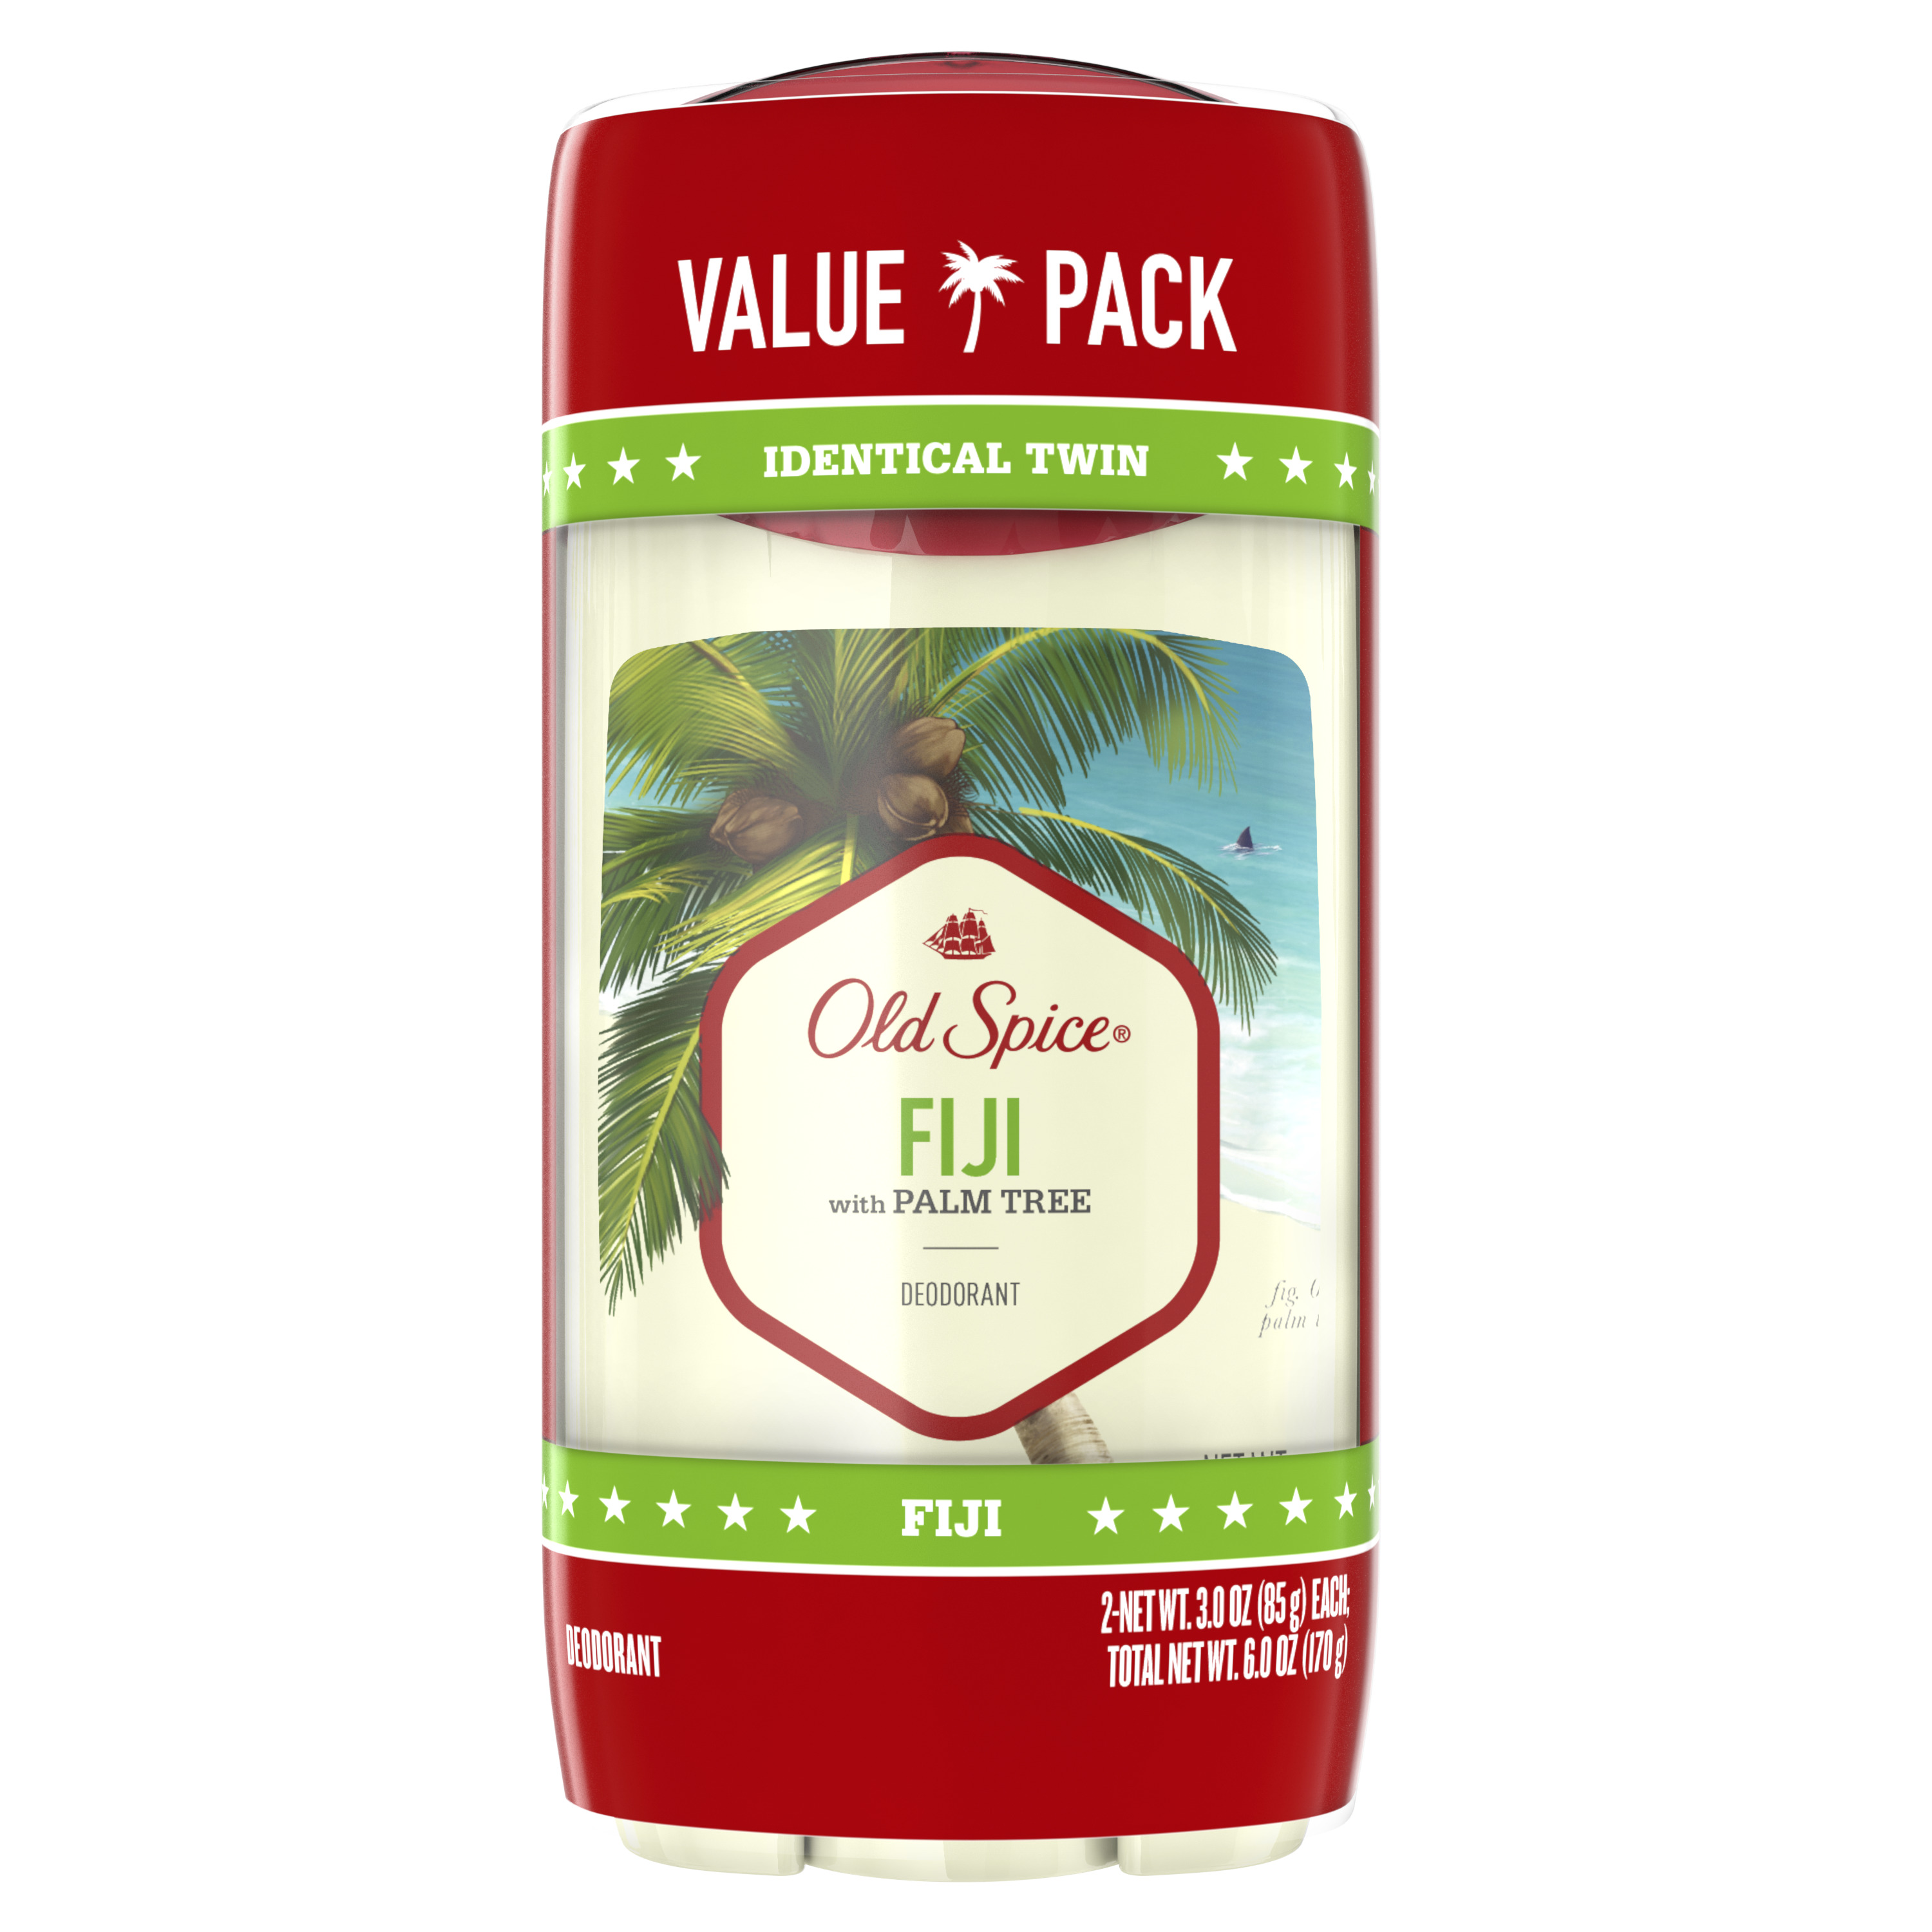 Old Spice Deodorant for Men Fiji with Palm Tree Scent Inspired by Nature 3 oz (Pack of 2)